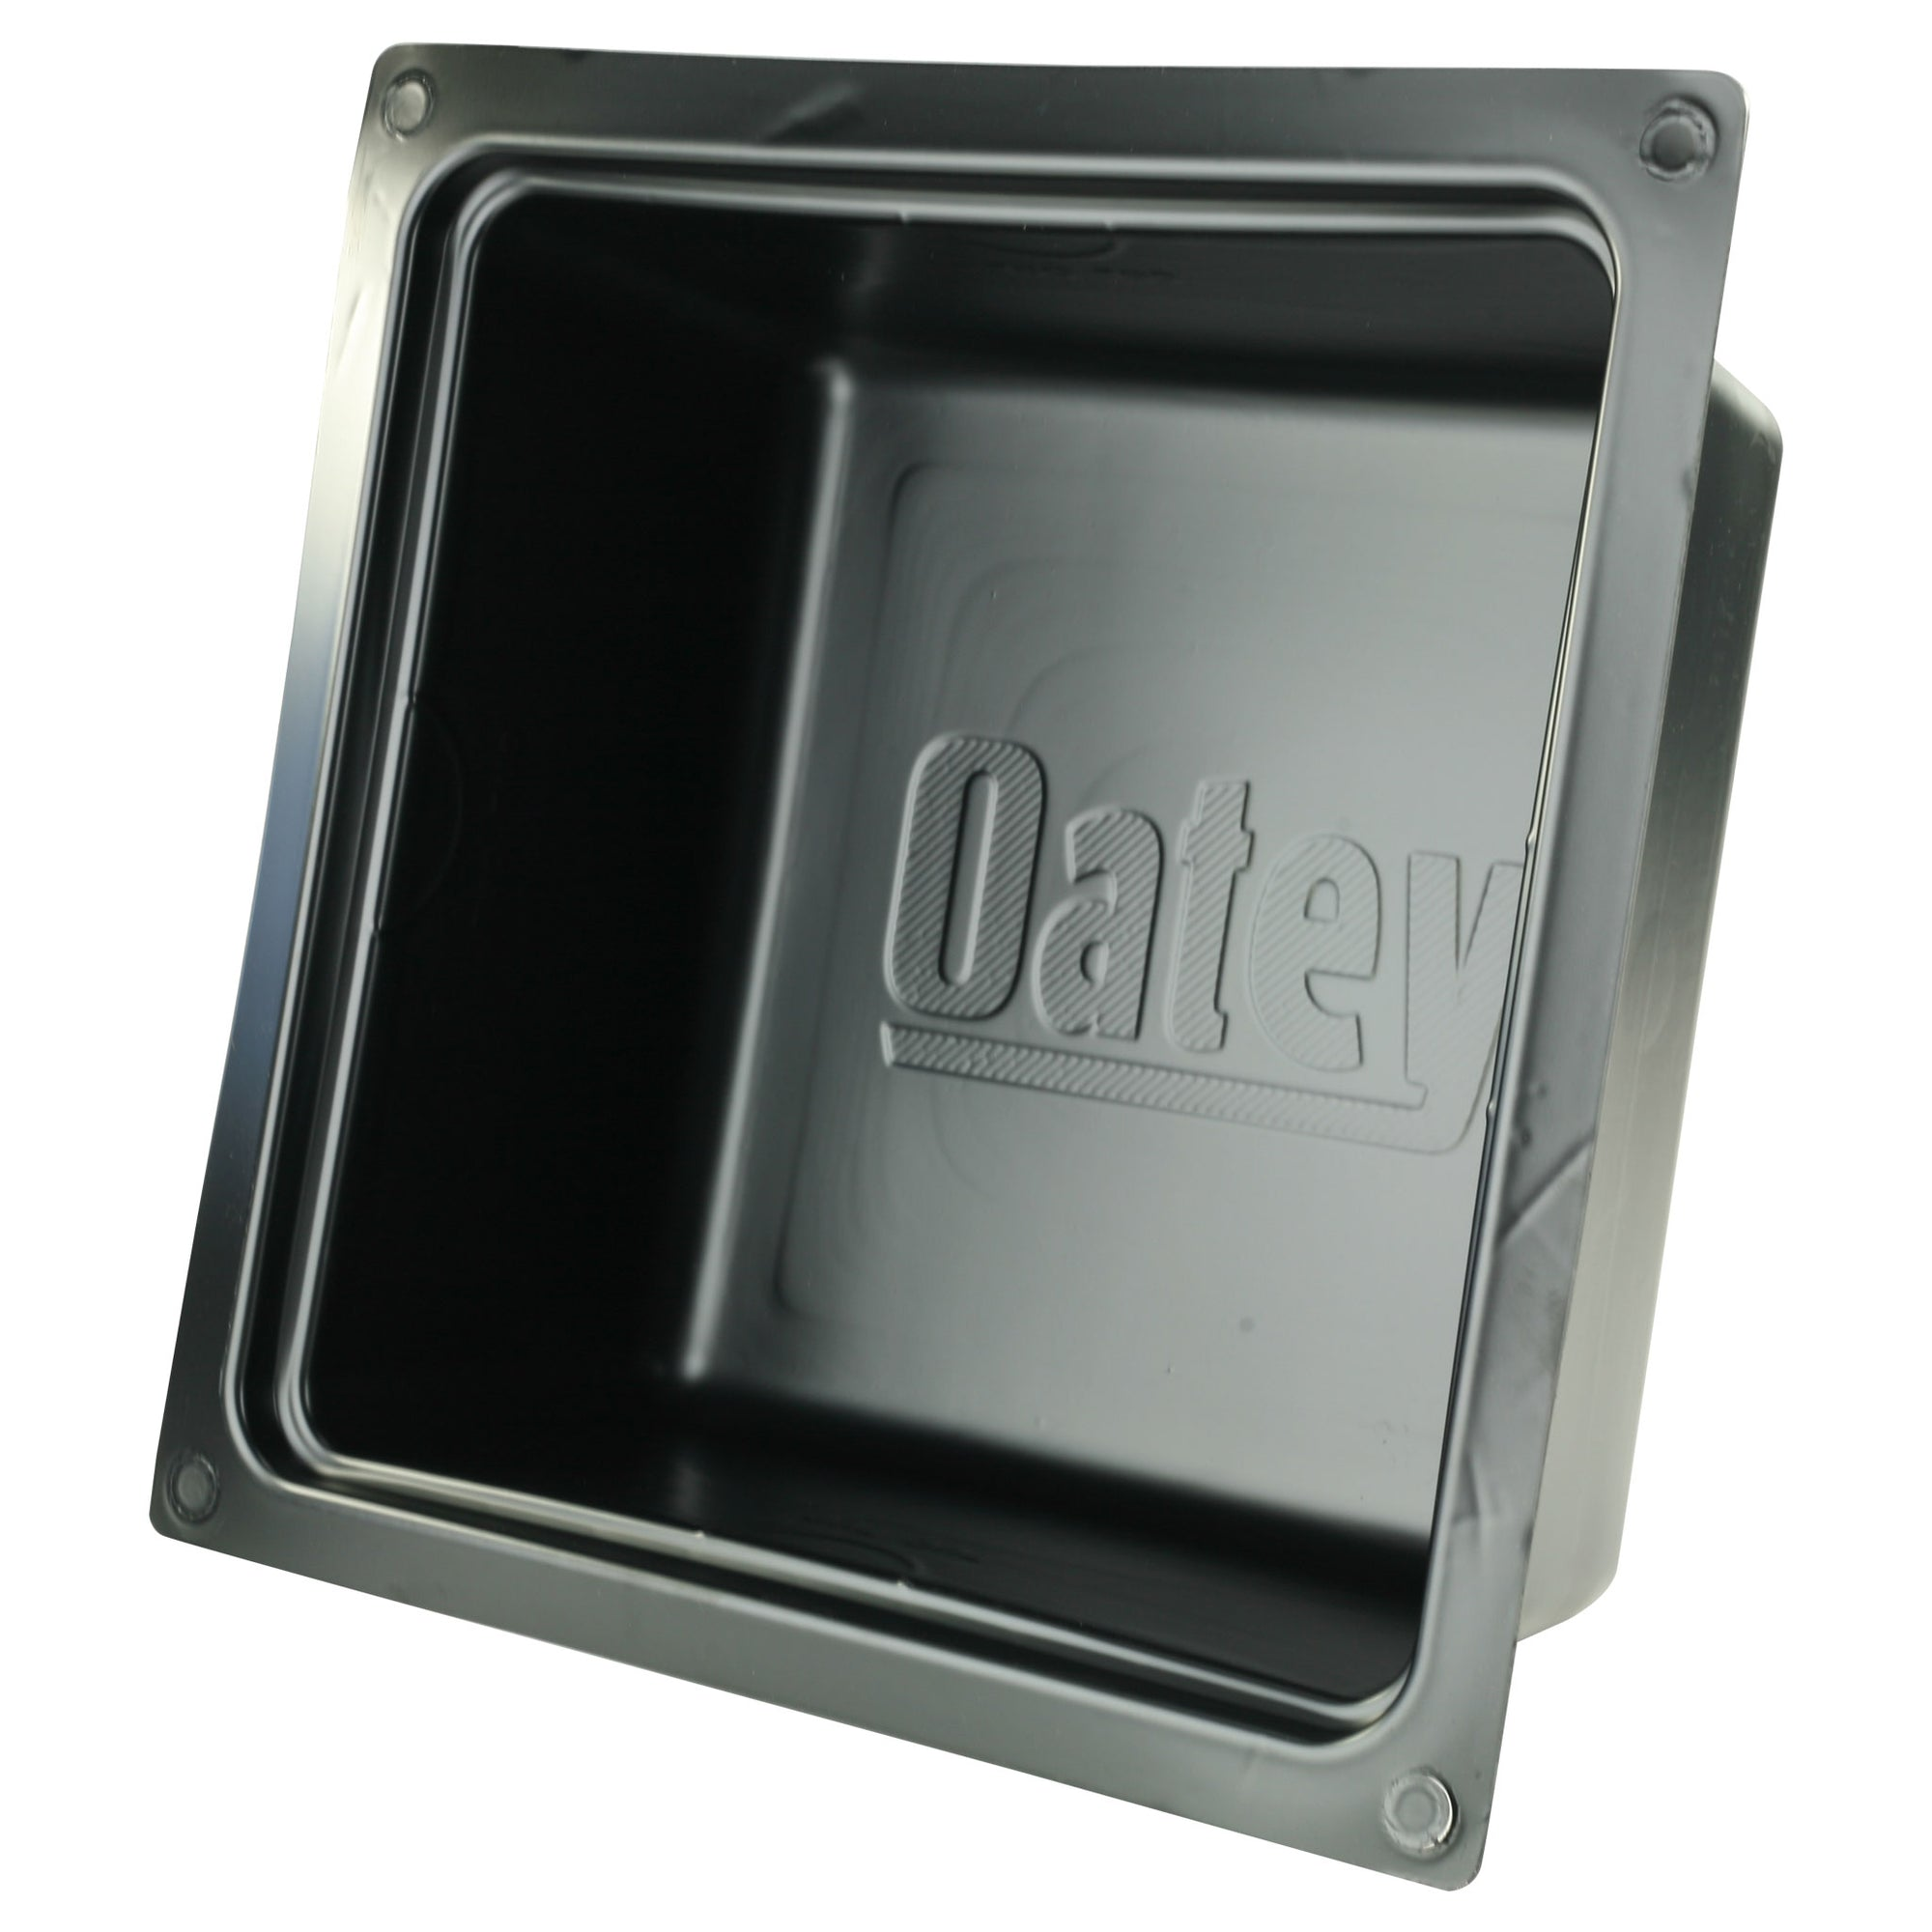 Oatey Tub Box